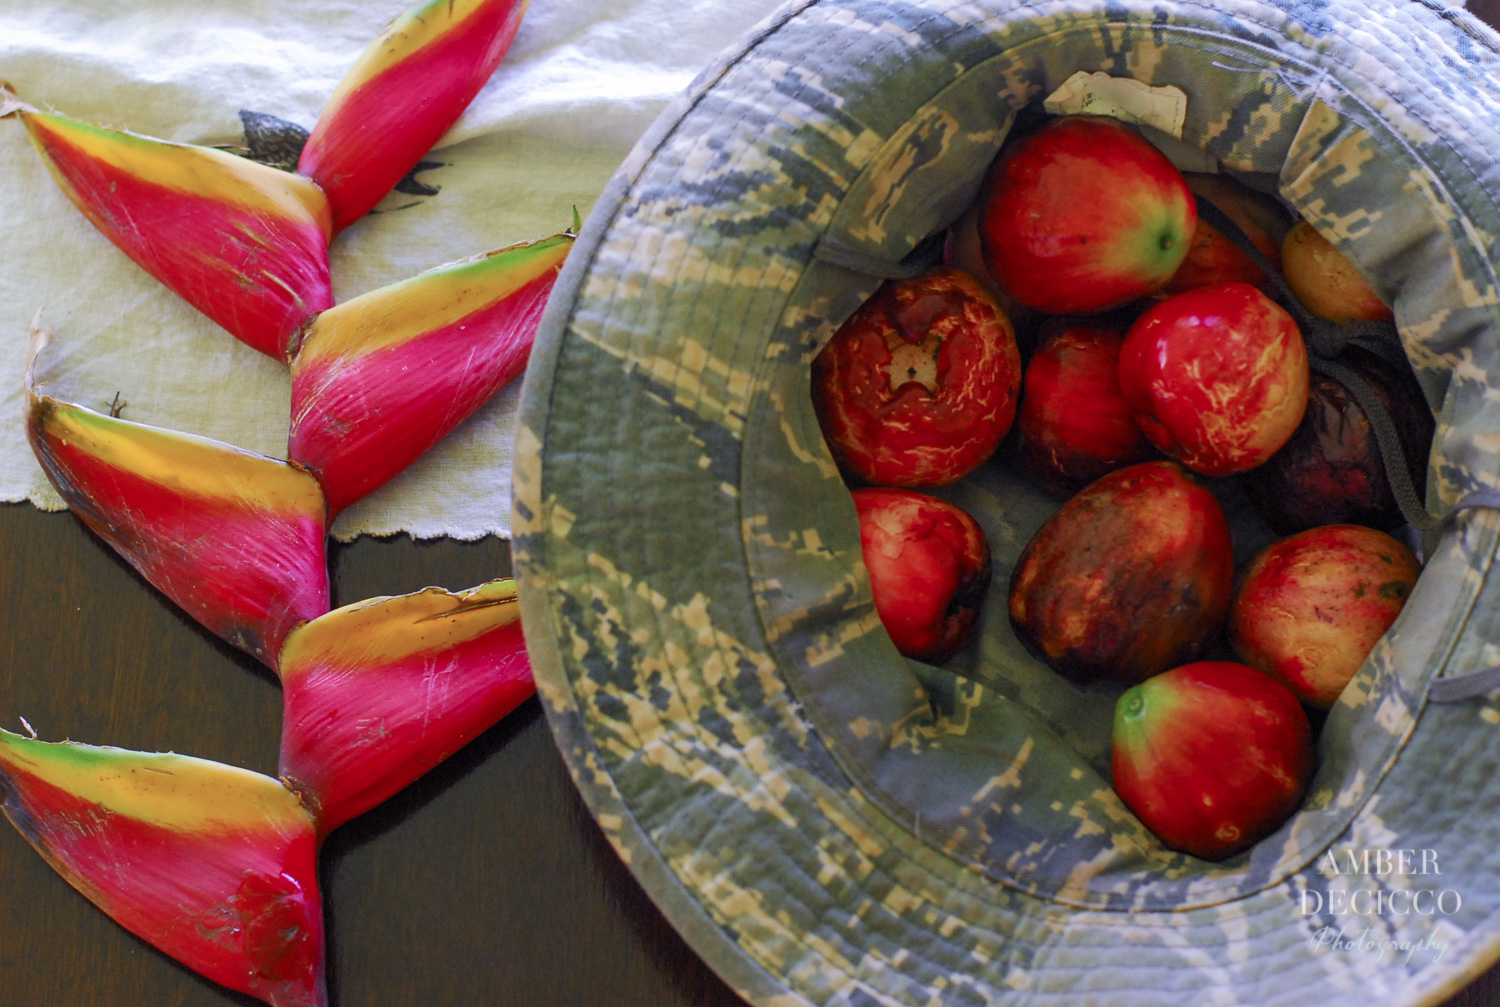 Our hike haul :) We met a kind man on our trail, and he gave us the heliconia plant. There we also lots of very ripe mountain apples along the trail! We picked a few for breakfast...